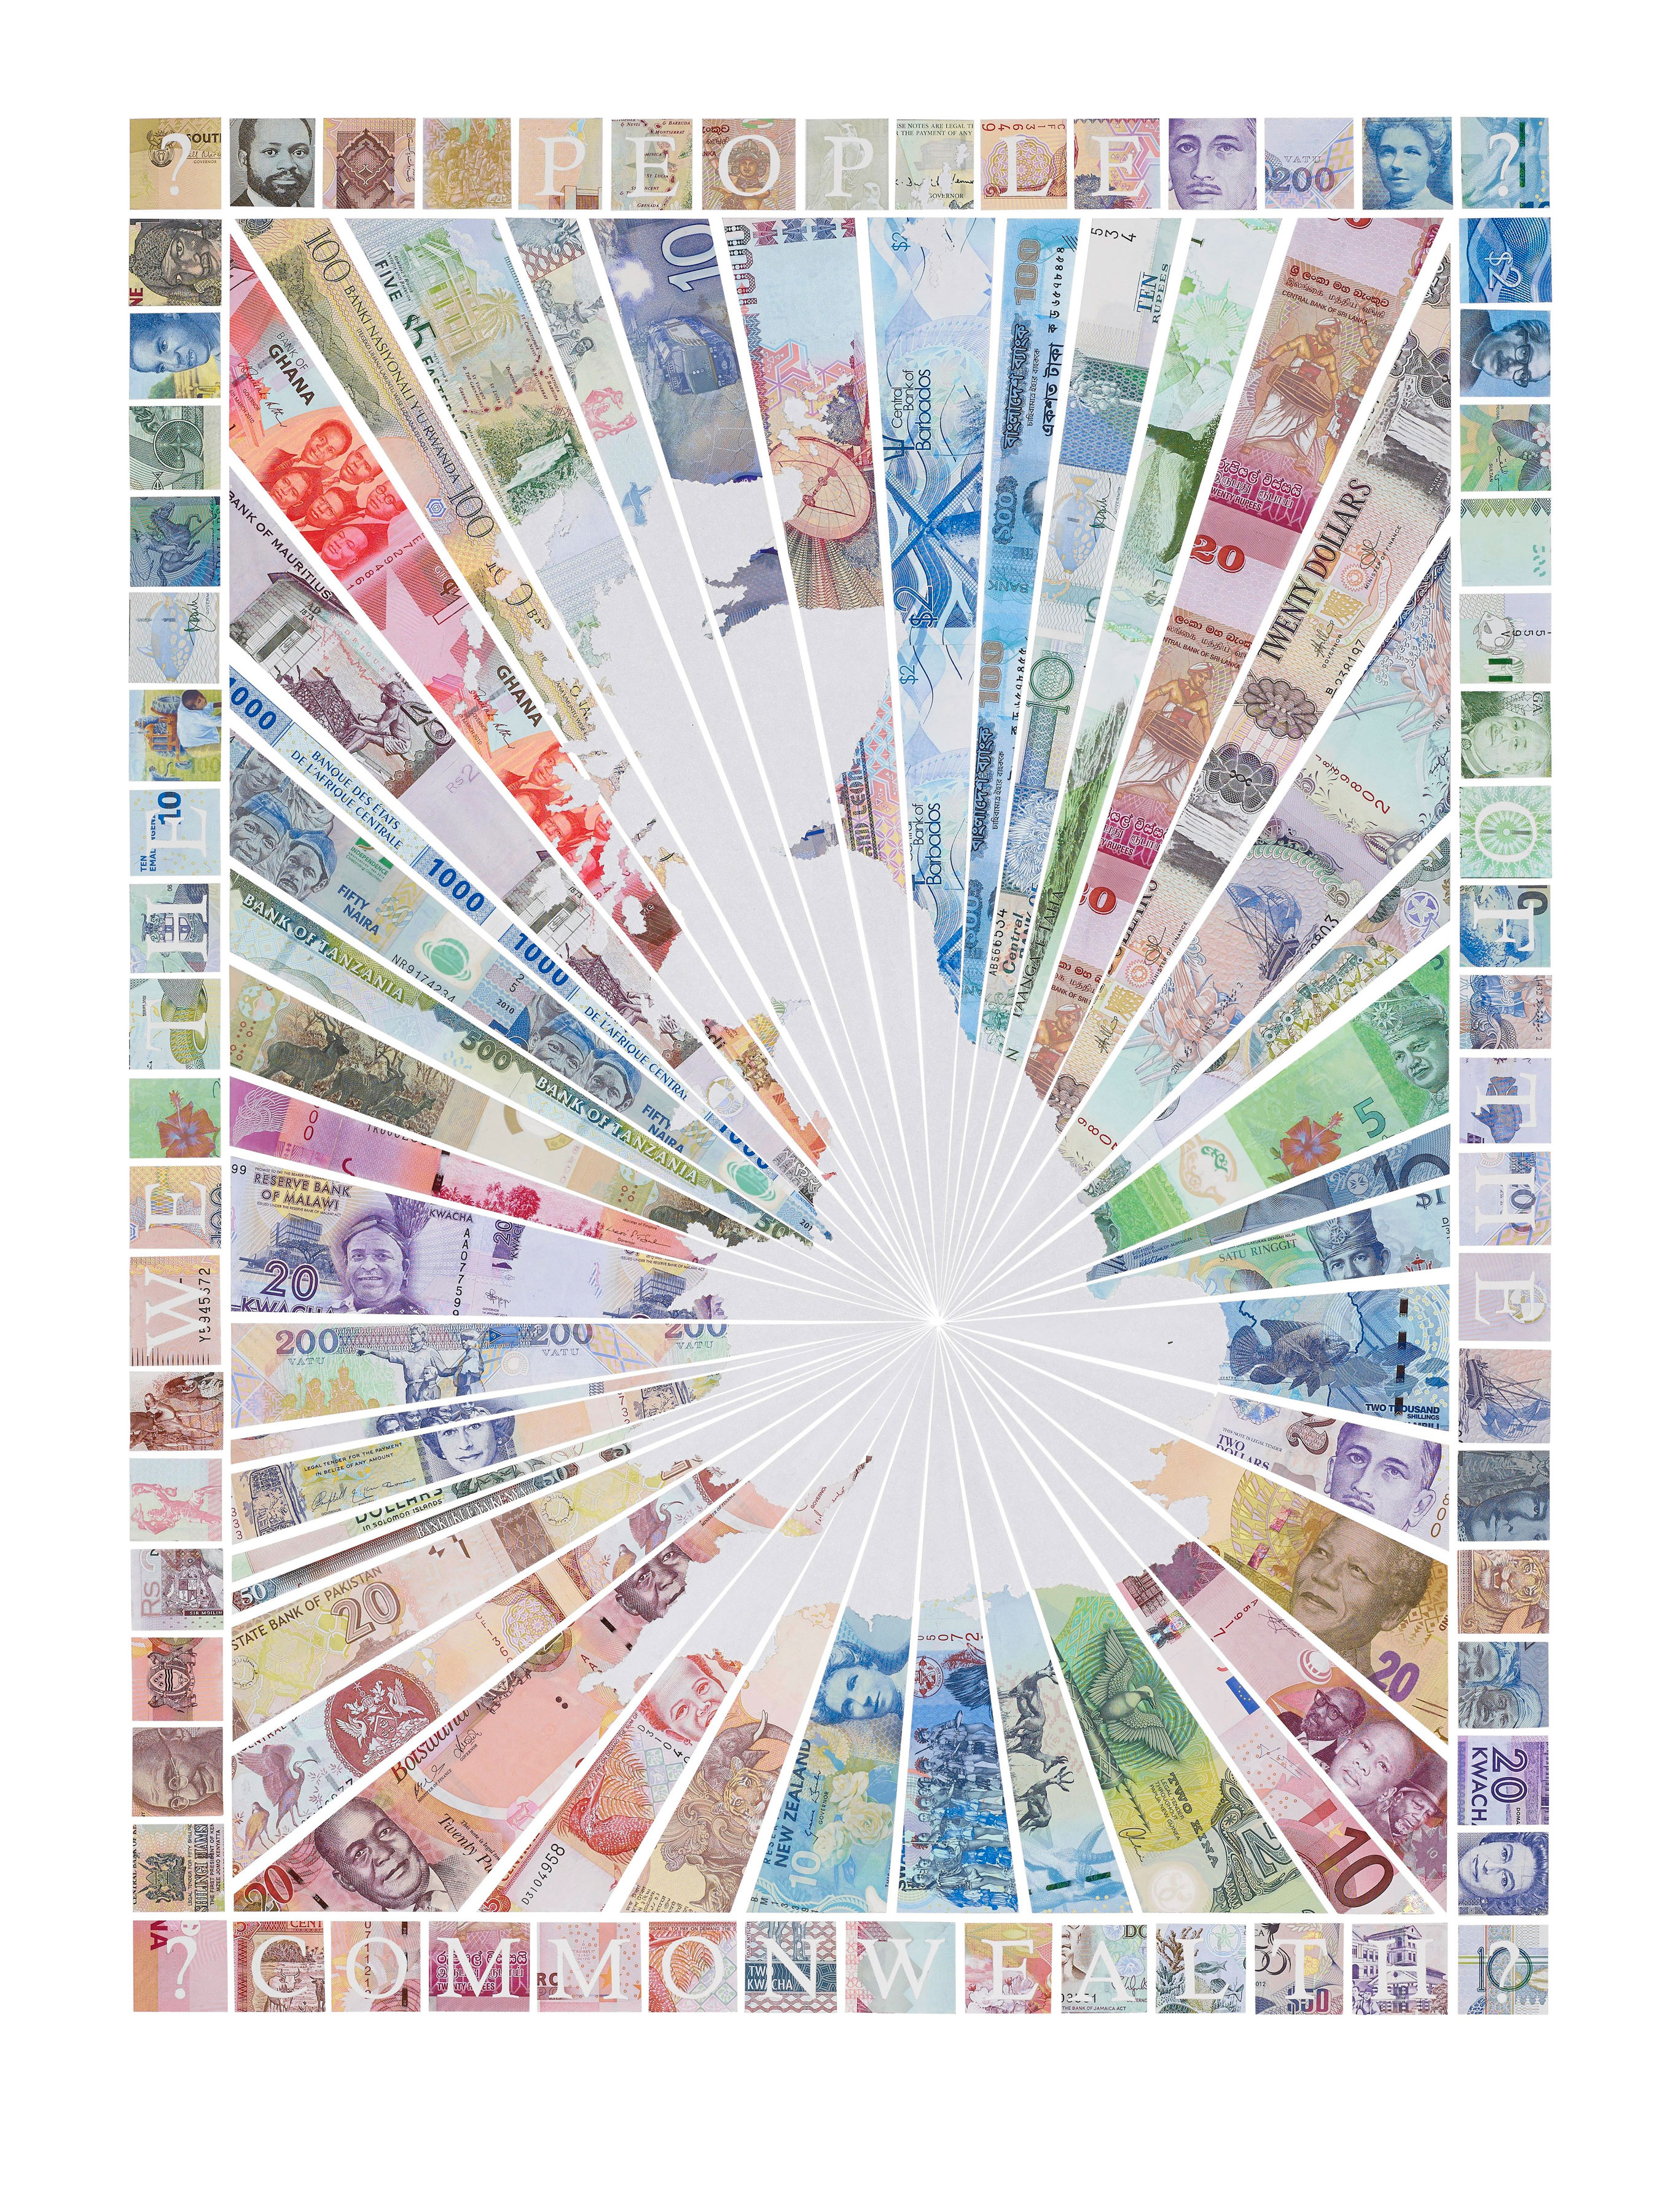 We The People of the Commonwealth - a limited edition money map print by Justine Smith, London